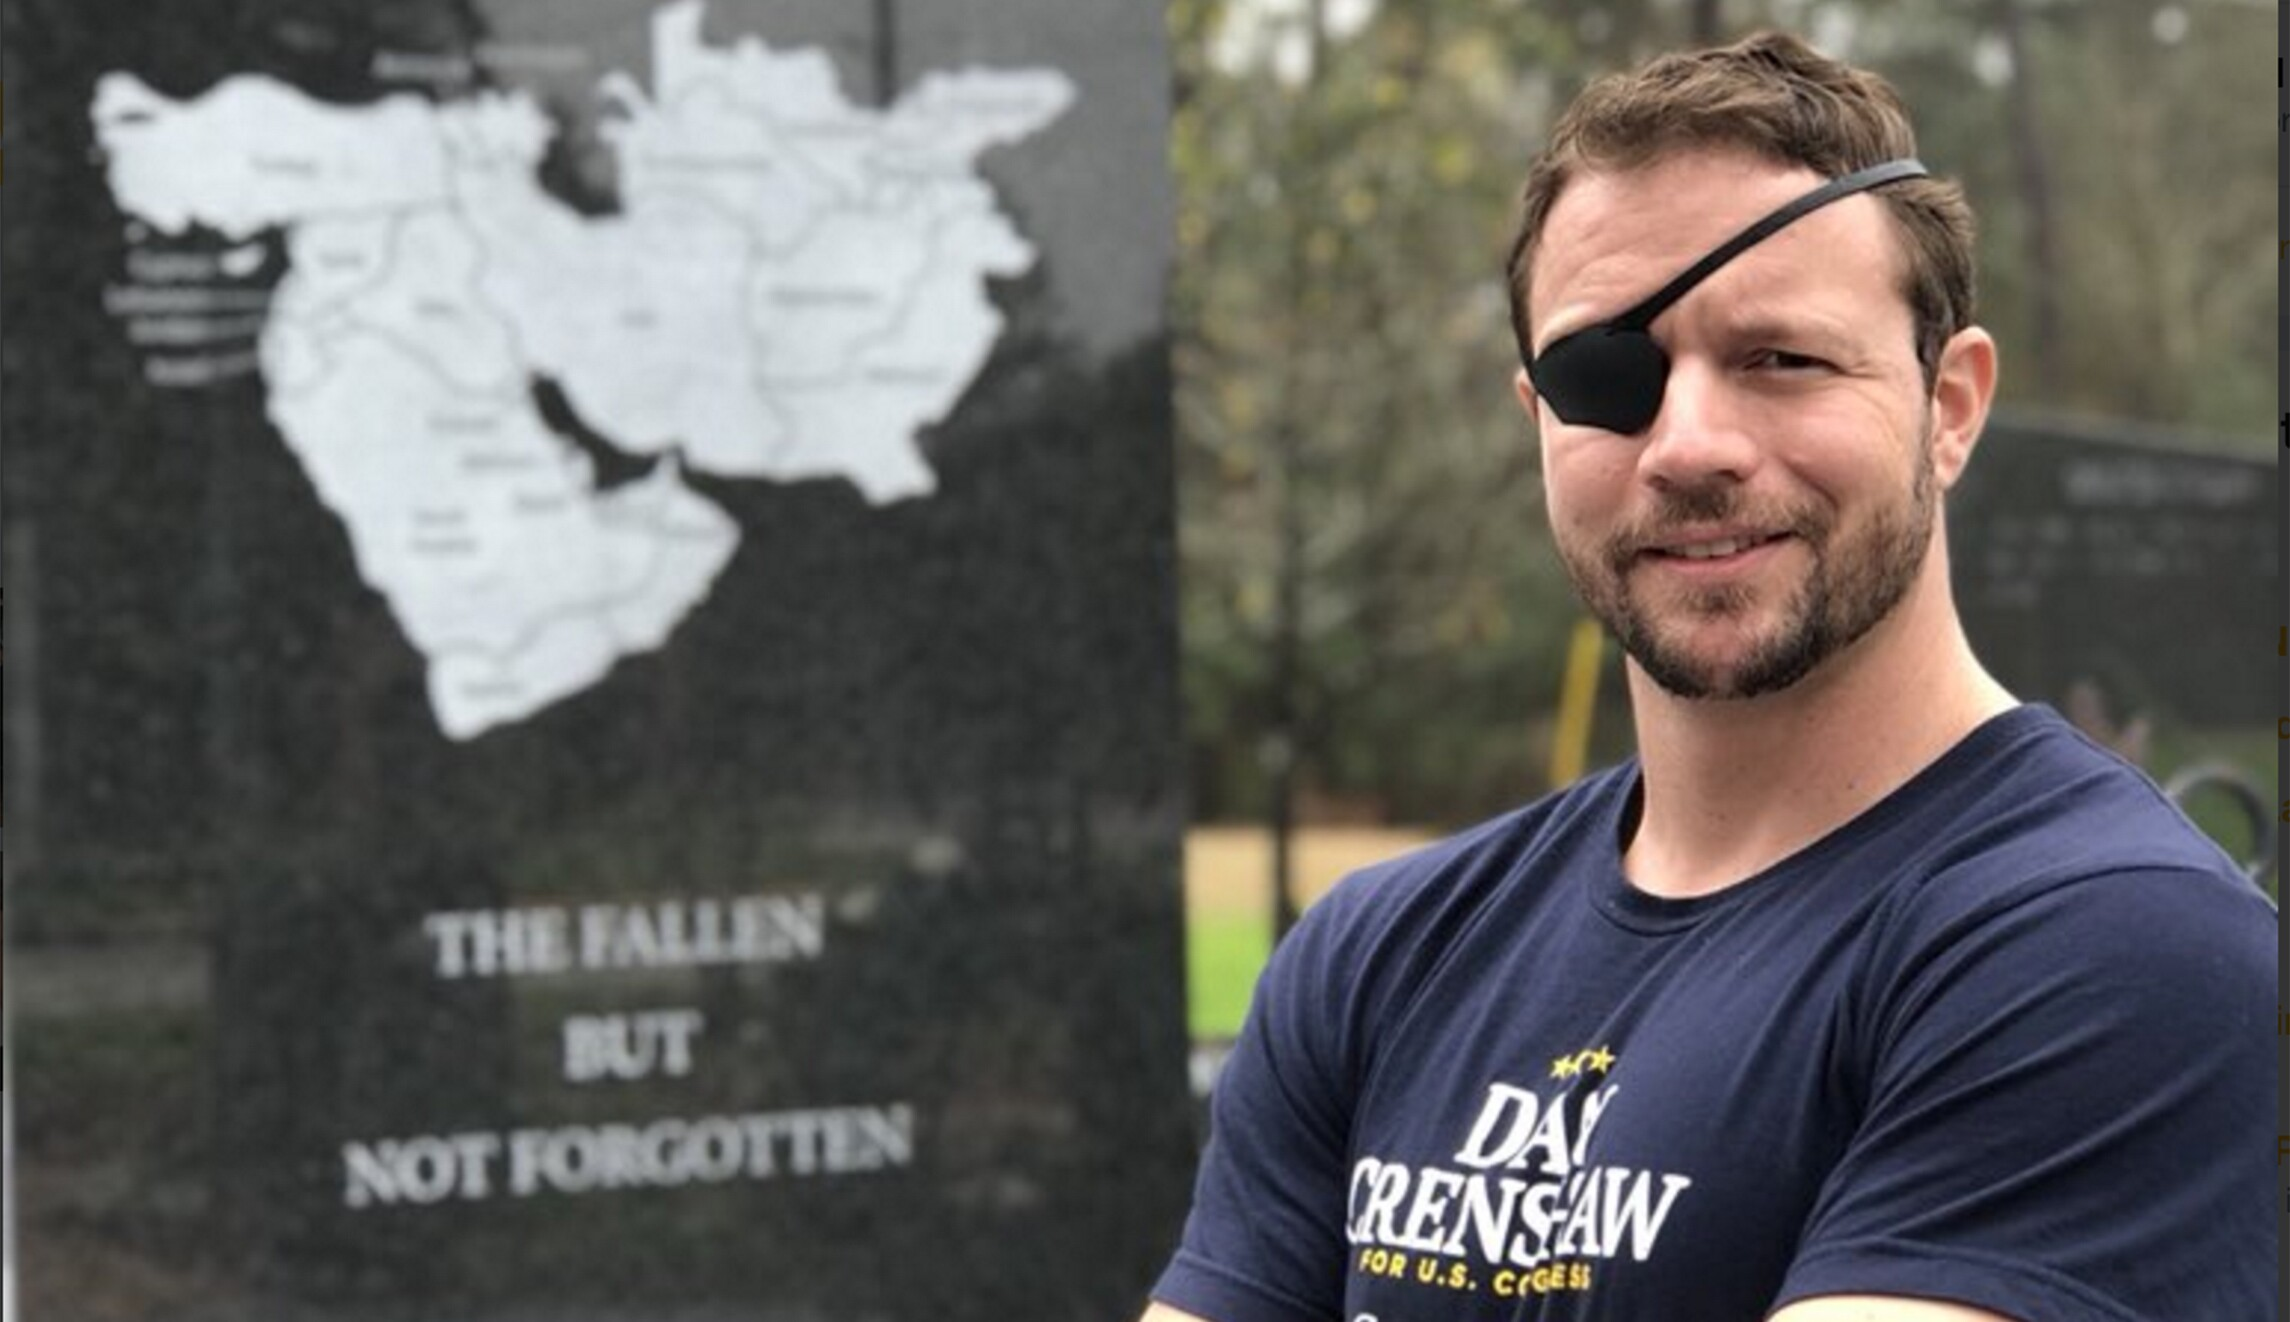 d54025b0fa8 Former Navy SEAL Dan Crenshaw and current GOP primary candidate in Texas is  a true public servant